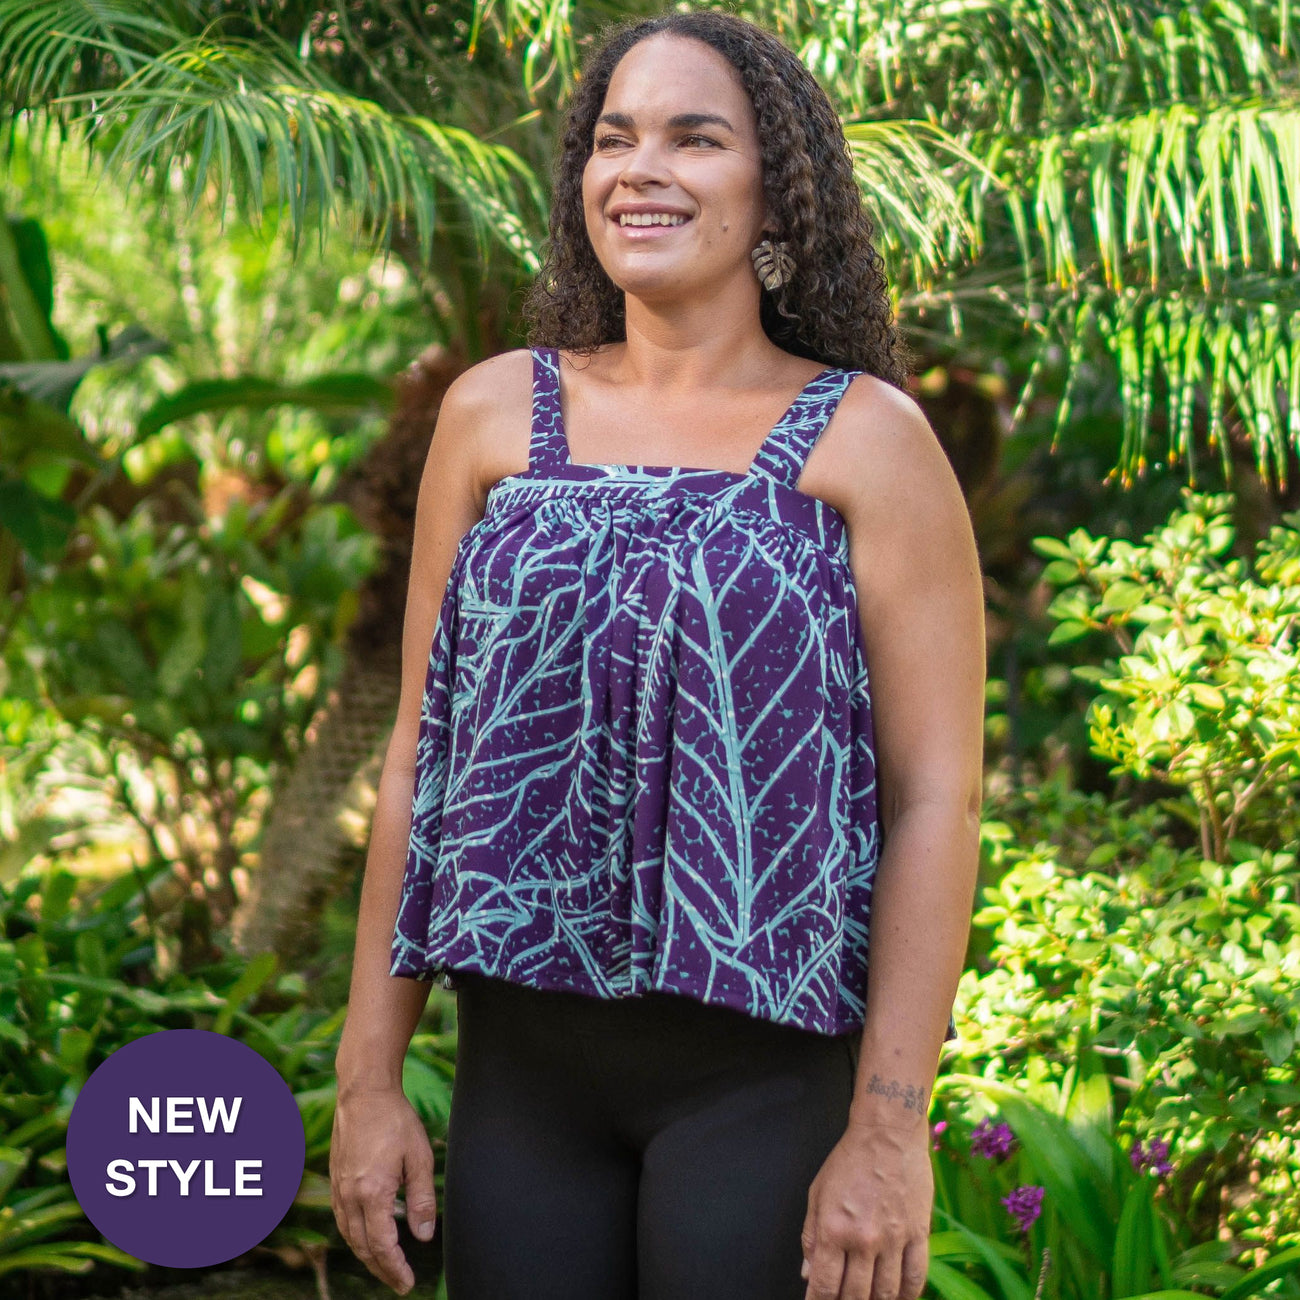 WAIPIʻO BABYDOLL KNIT TOP